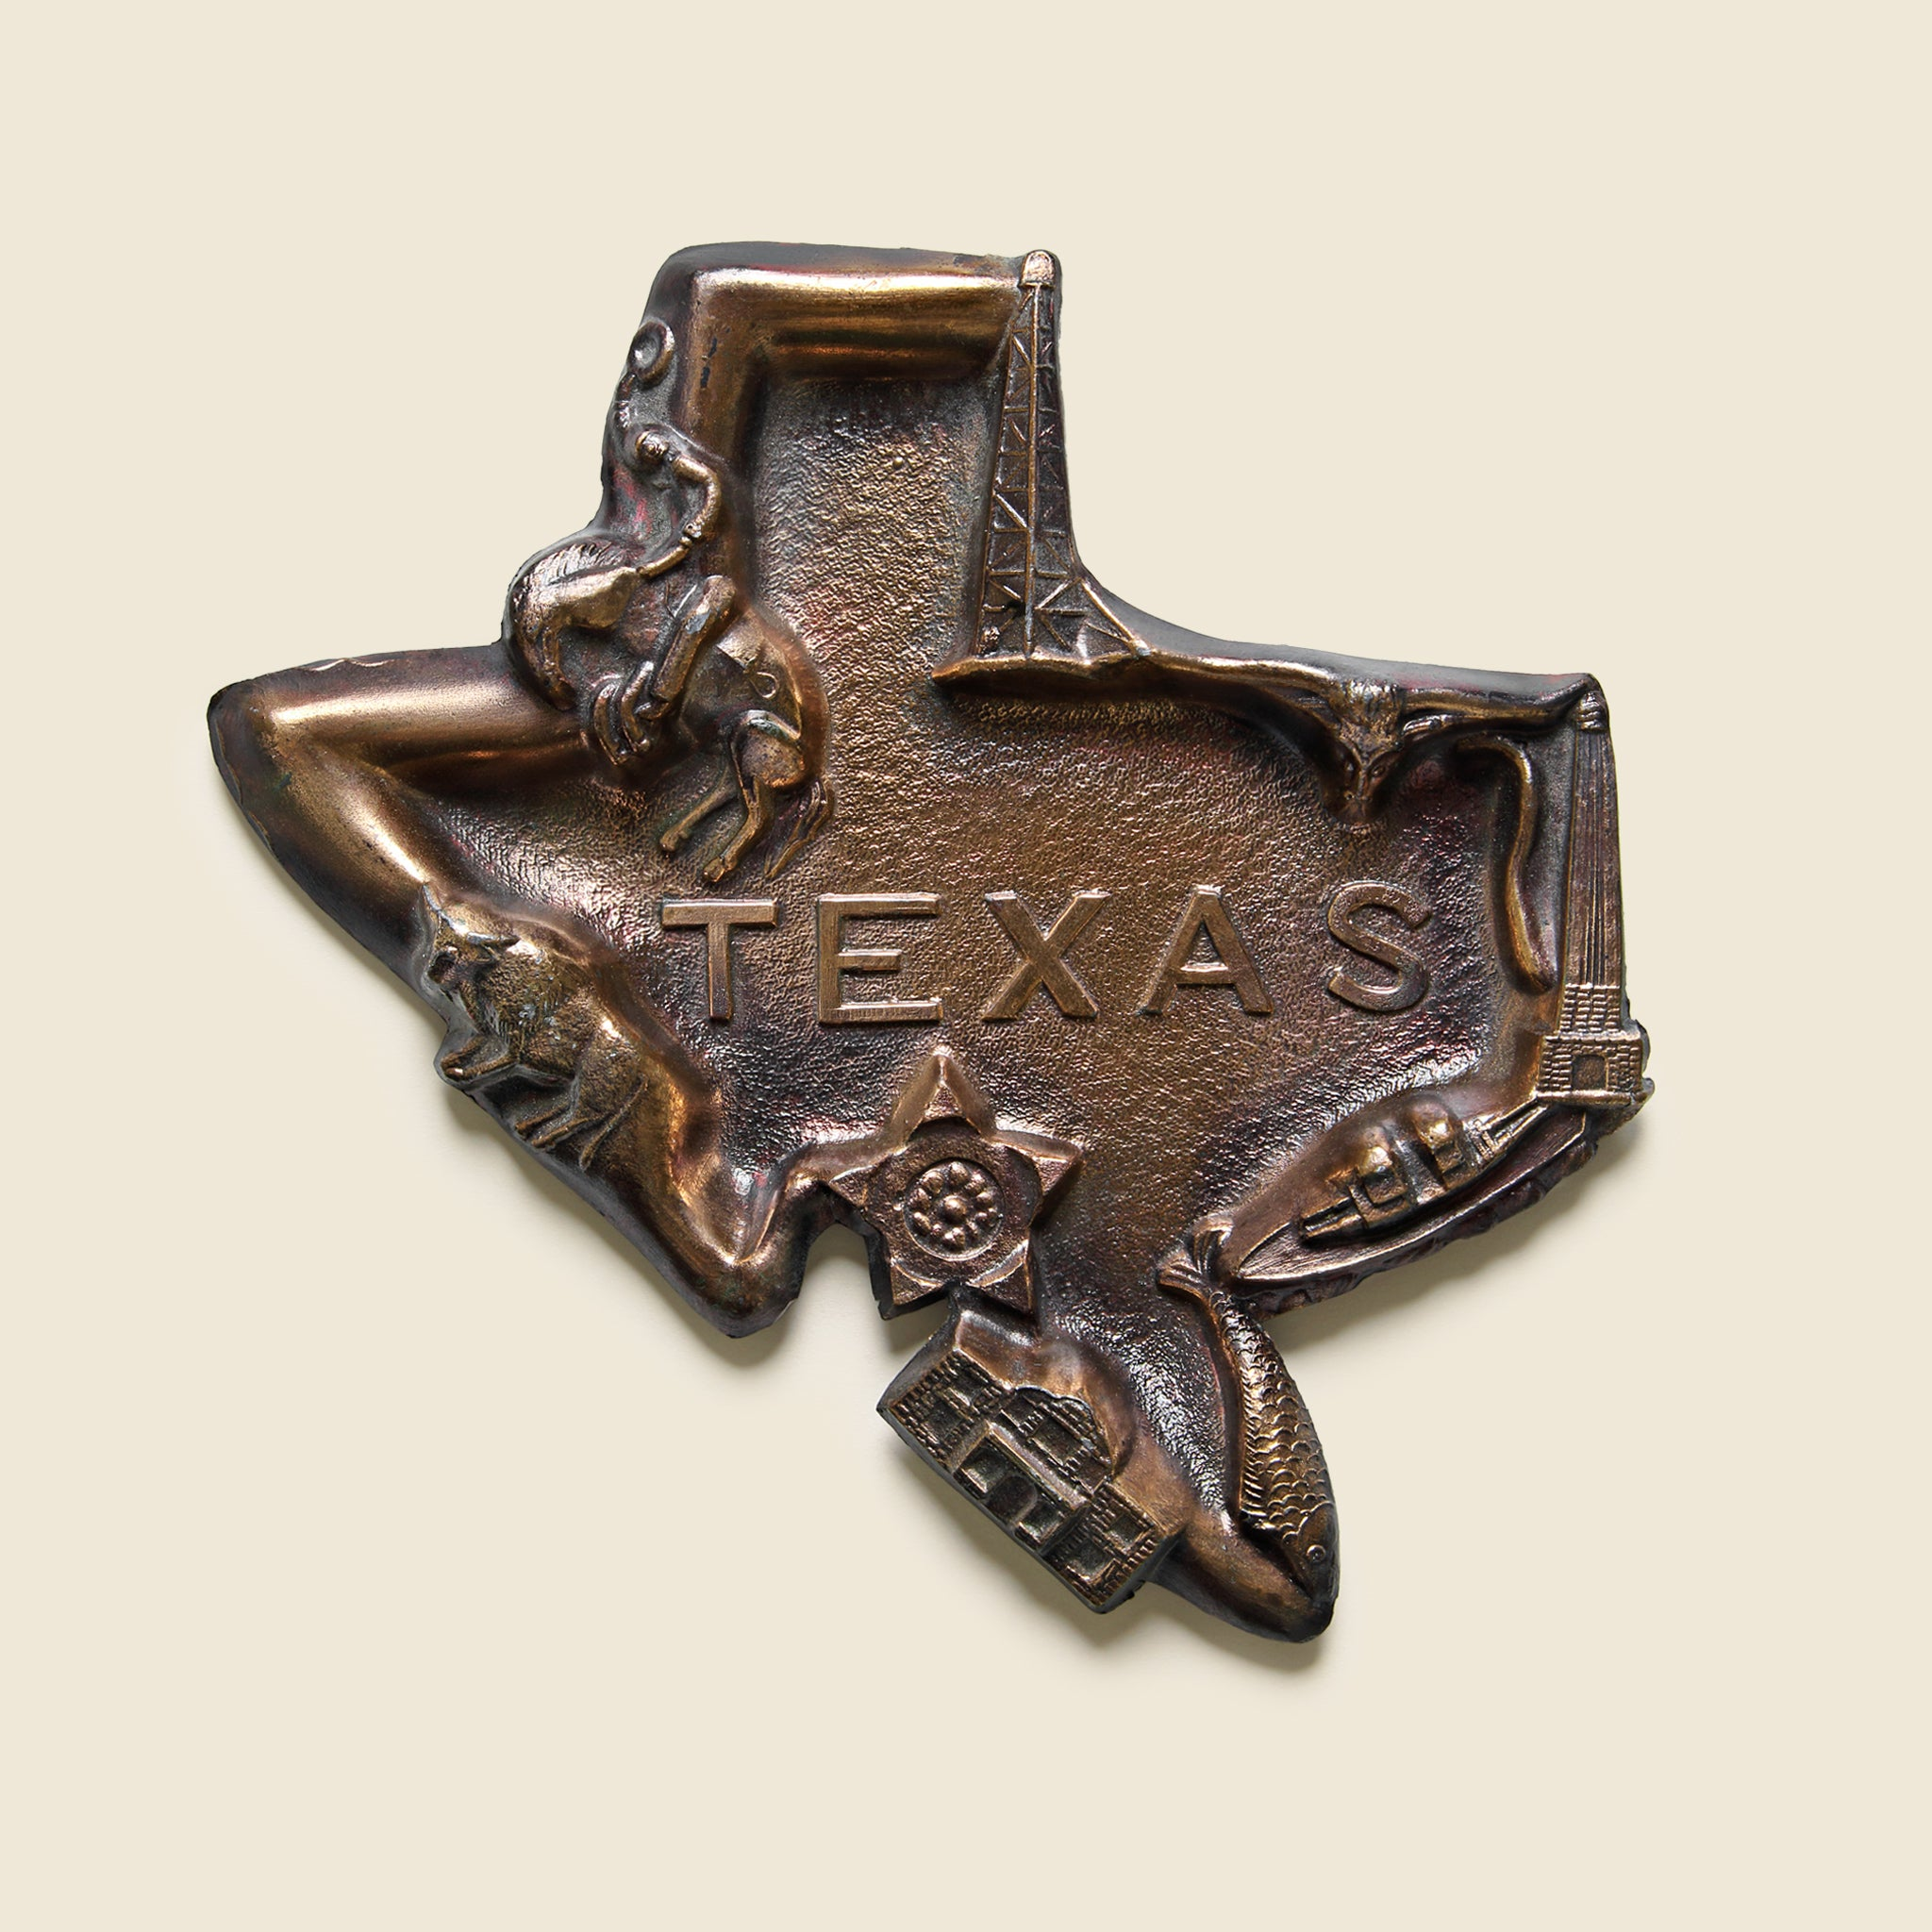 Cast Metal Texas Ashtray